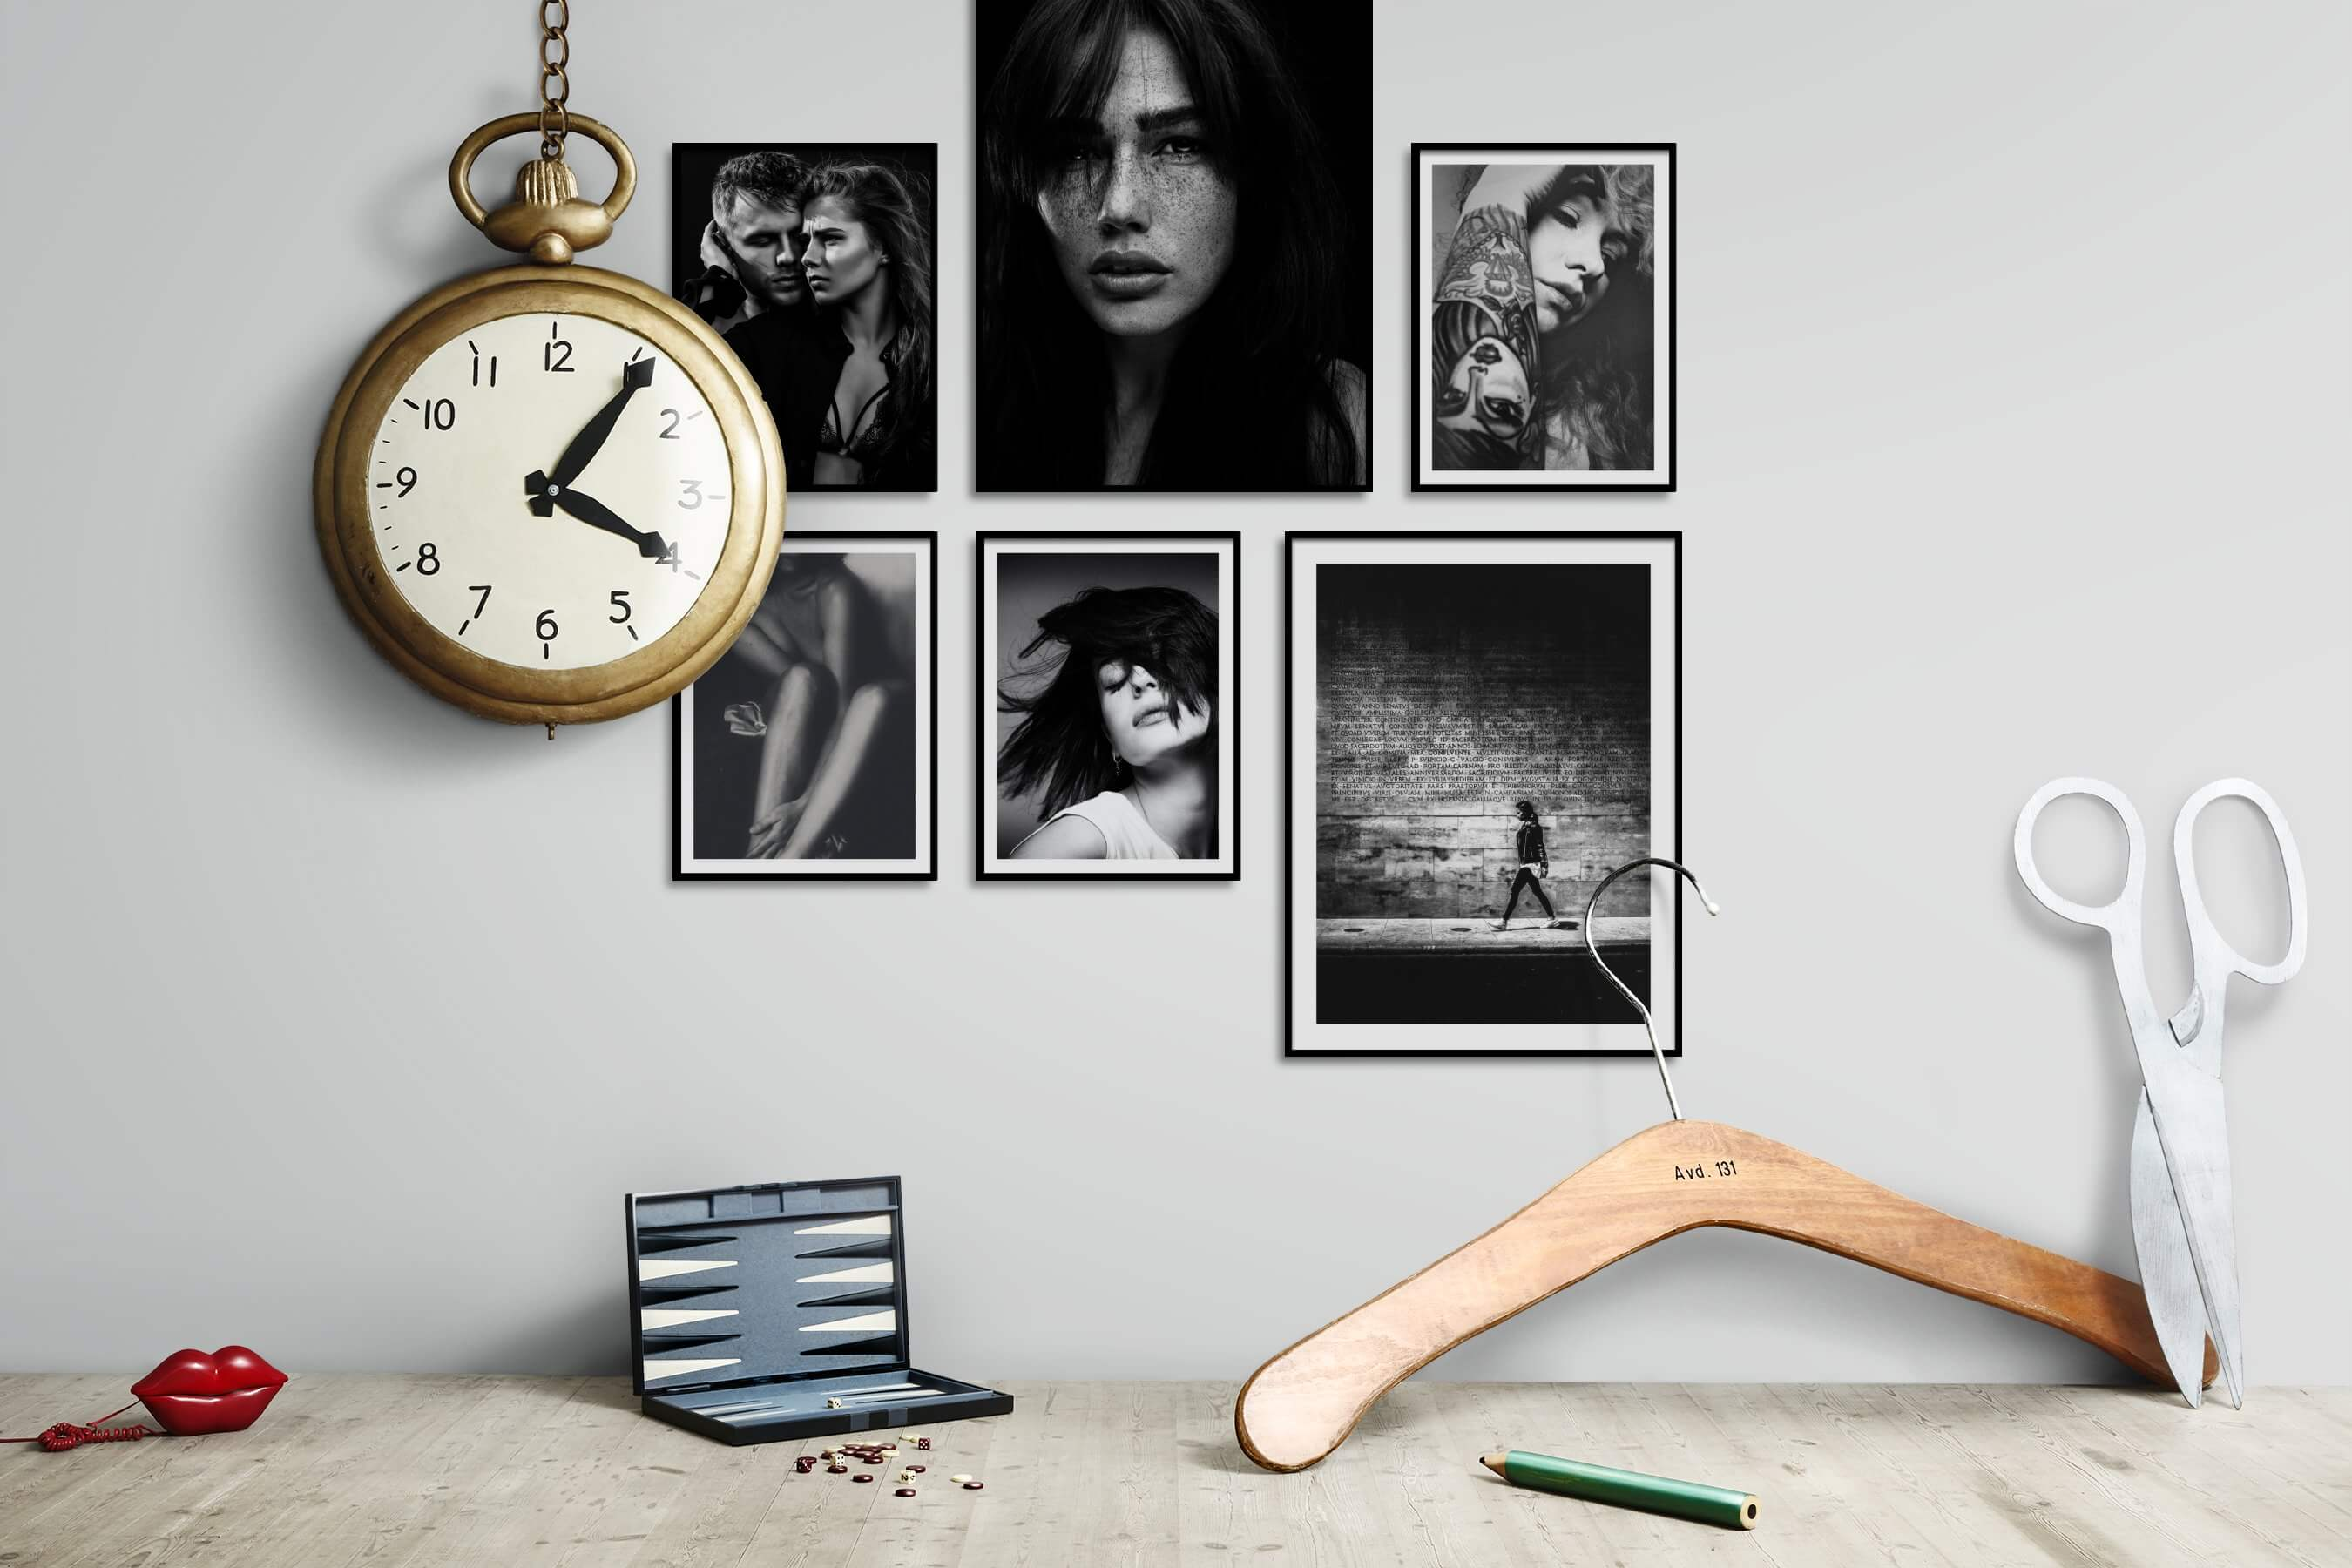 Gallery wall idea with six framed pictures arranged on a wall depicting Fashion & Beauty, Black & White, Dark Tones, and City Life